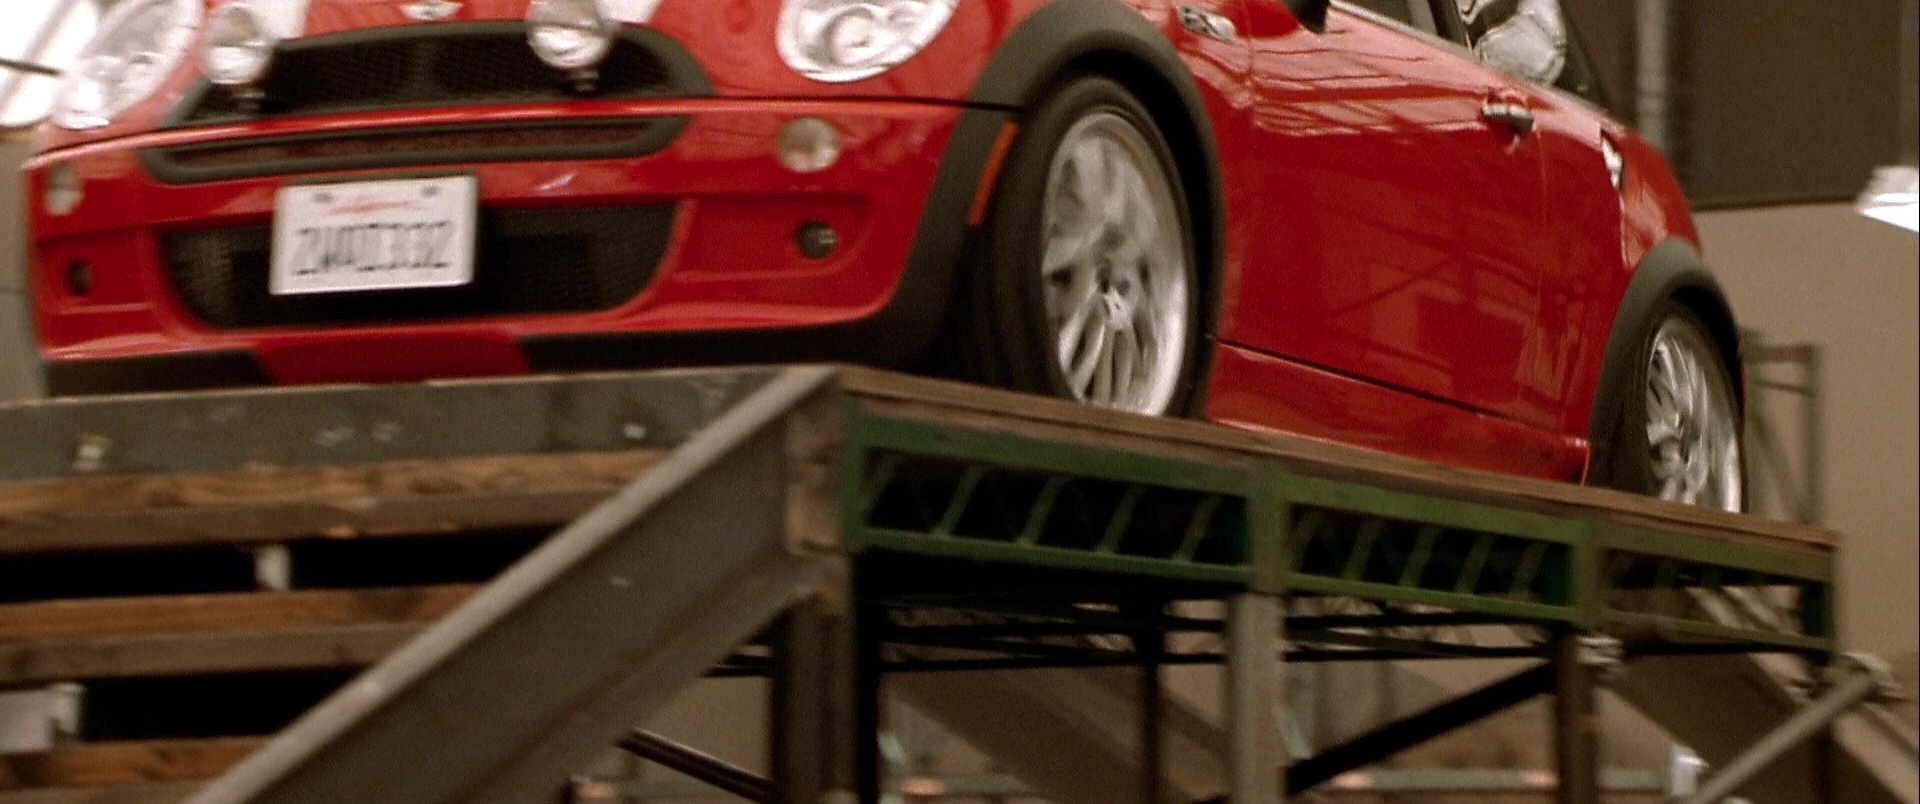 MINI Cooper S Red Car Used by Charlize Theron in The ...